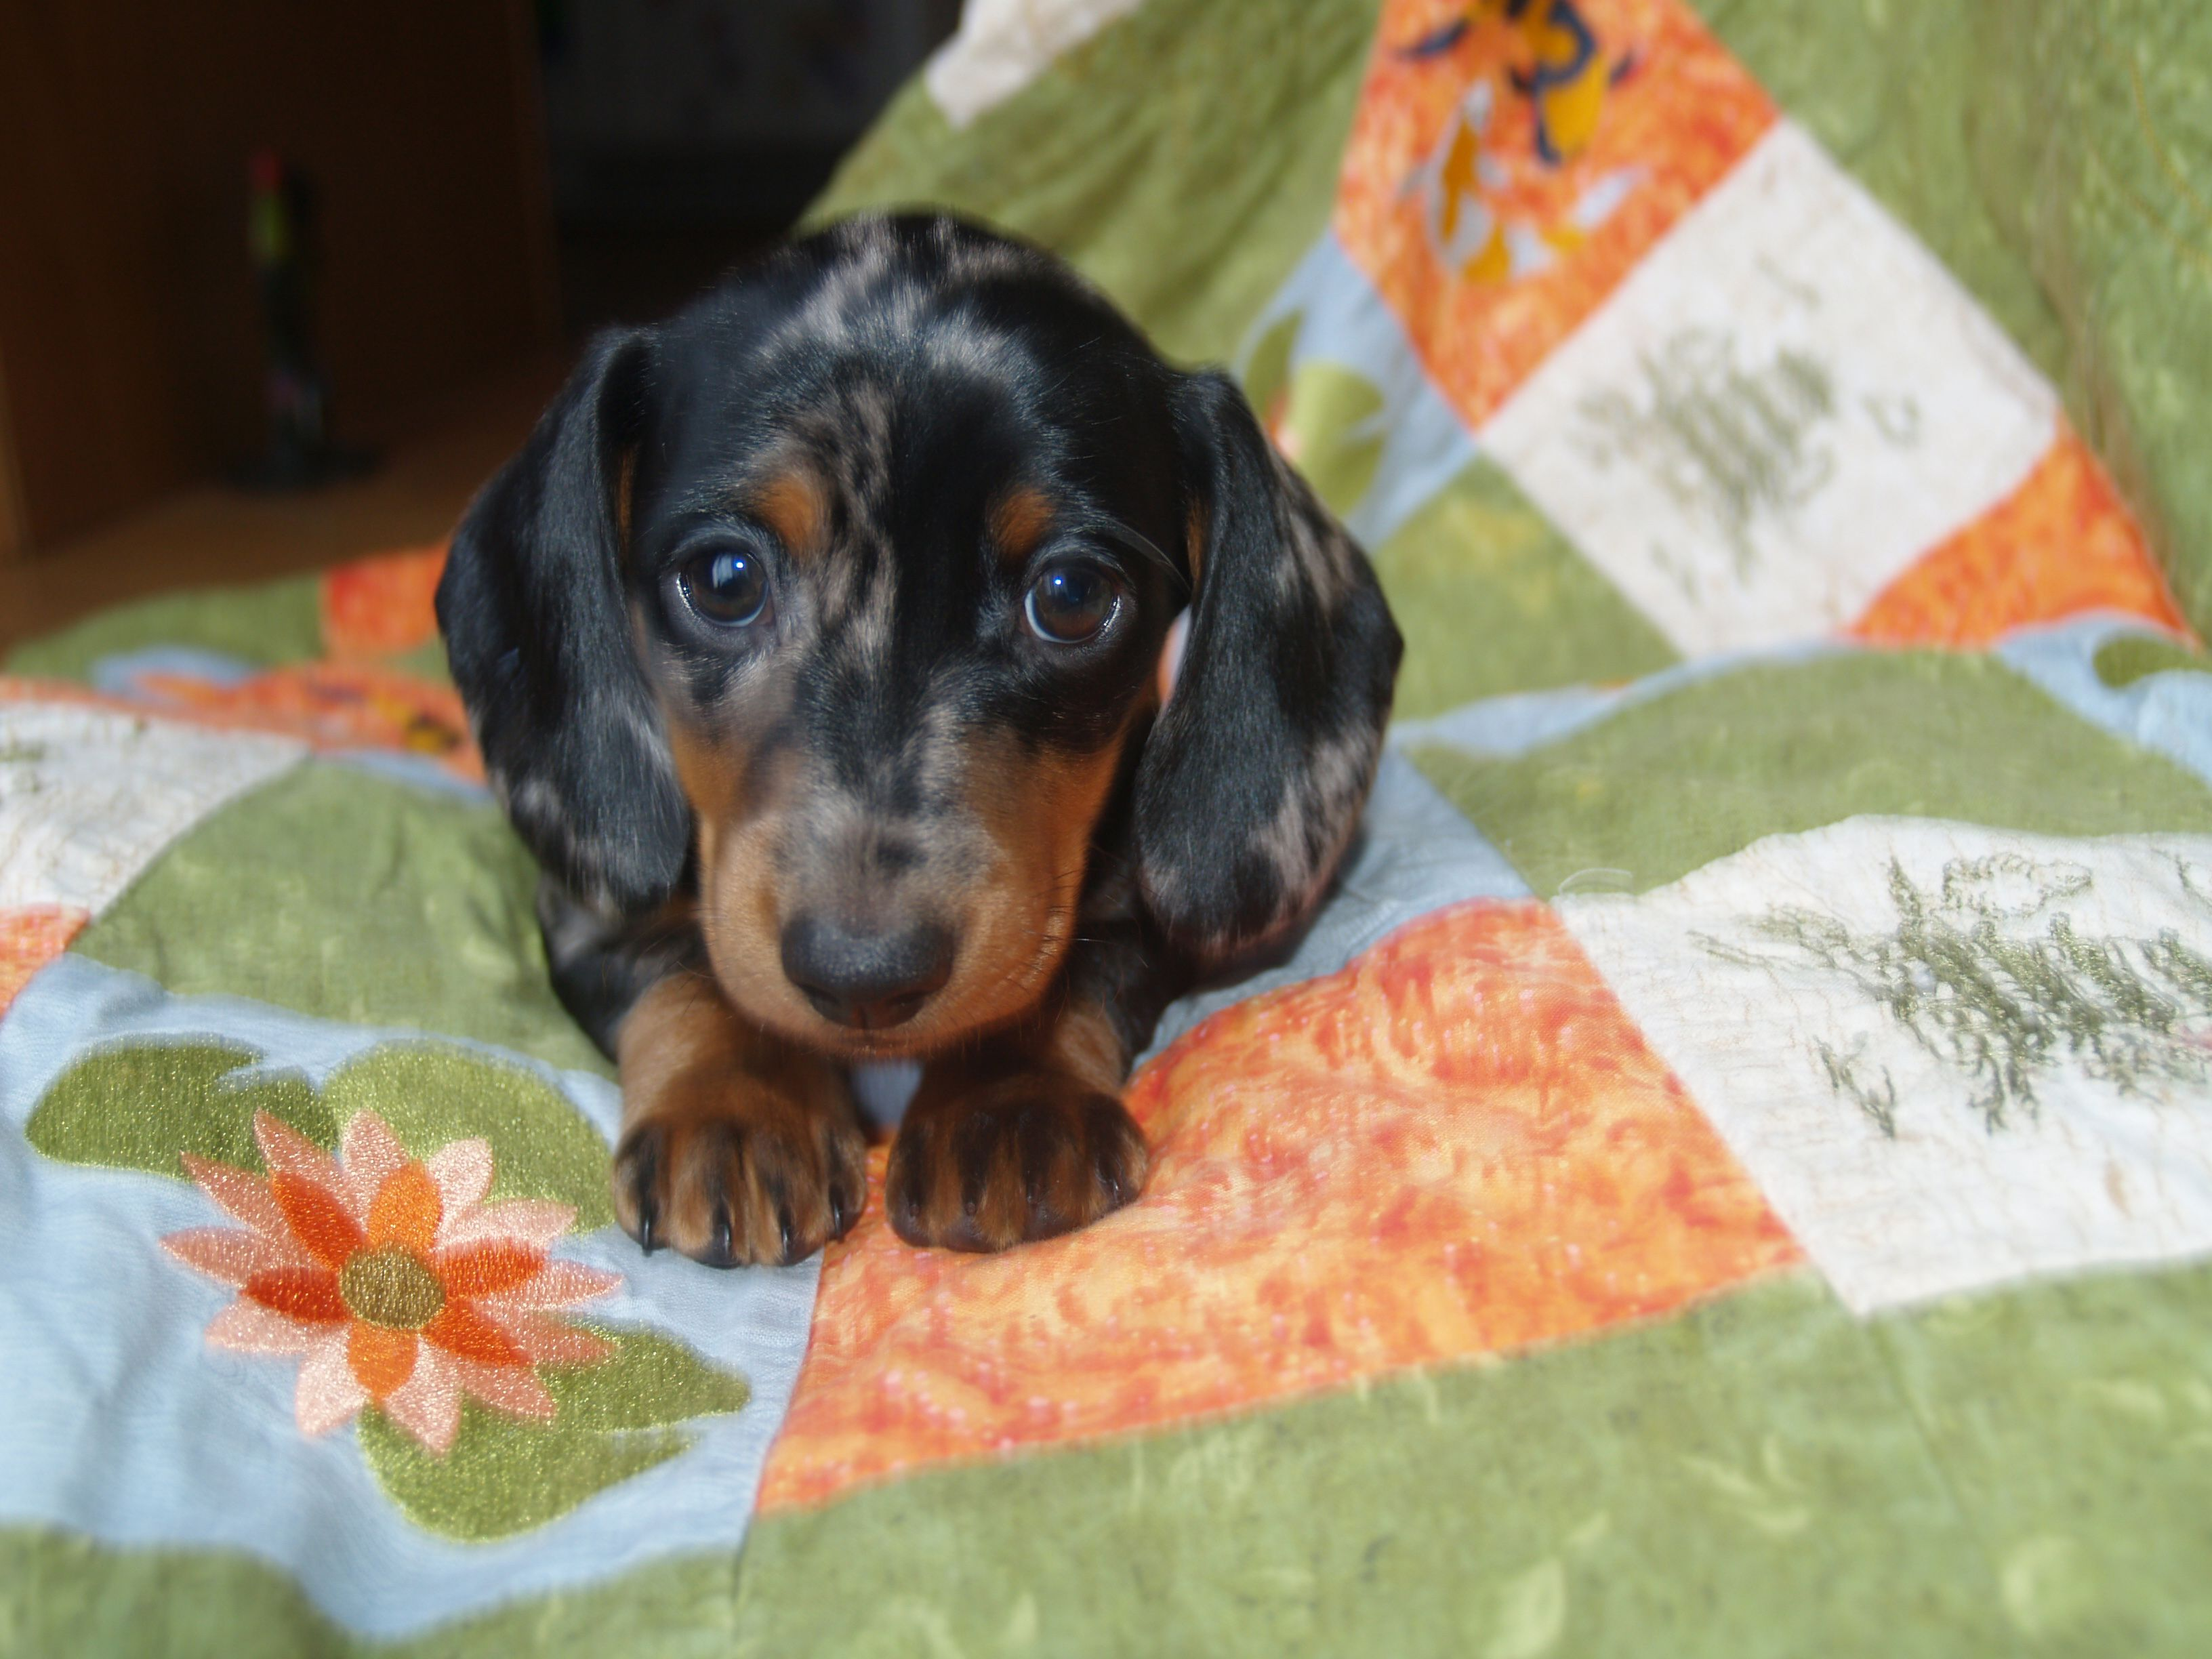 Alice Smooth Black Tan Dapple Mini Dachshund 7 Weeks Old